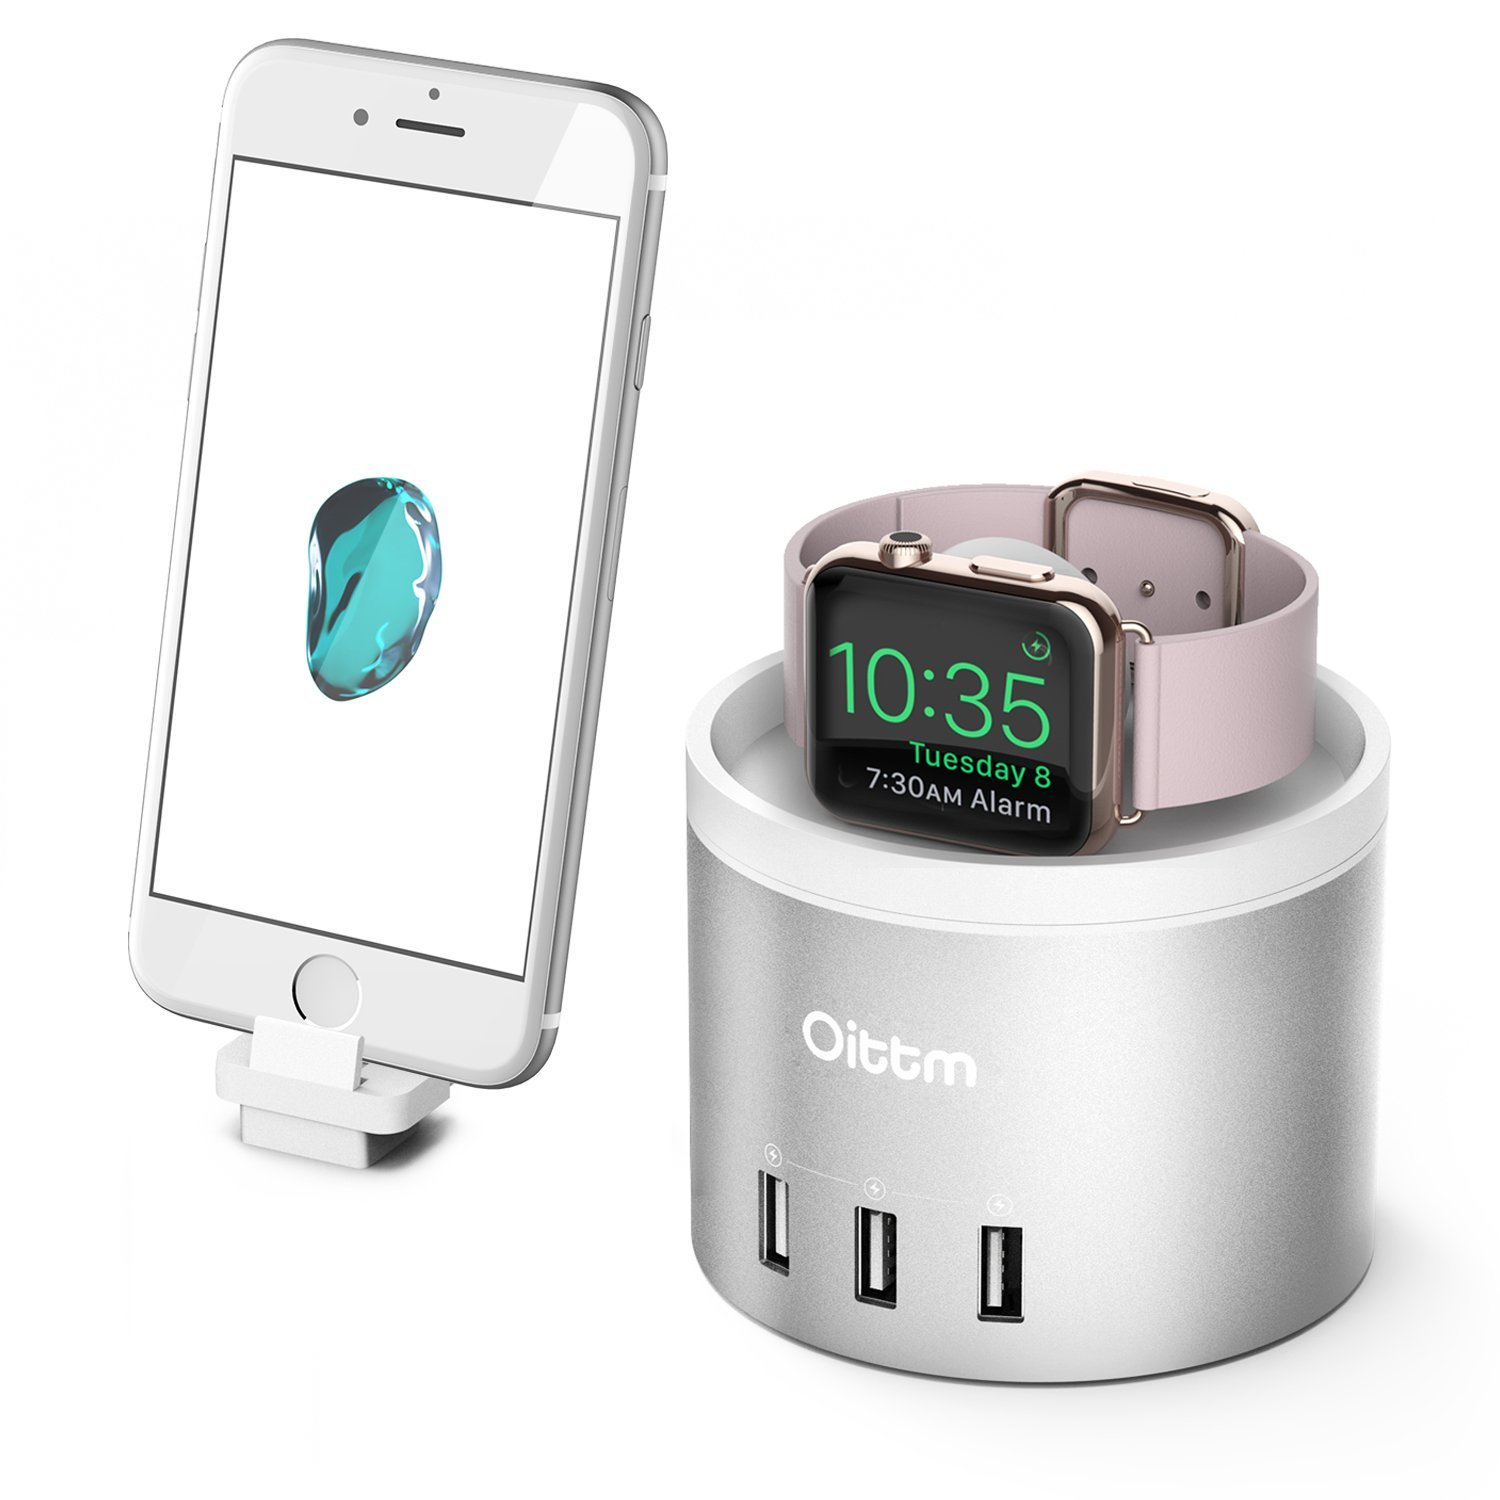 nightstand-station-apple-watch-oittm-lopoo-uk-amazon-1